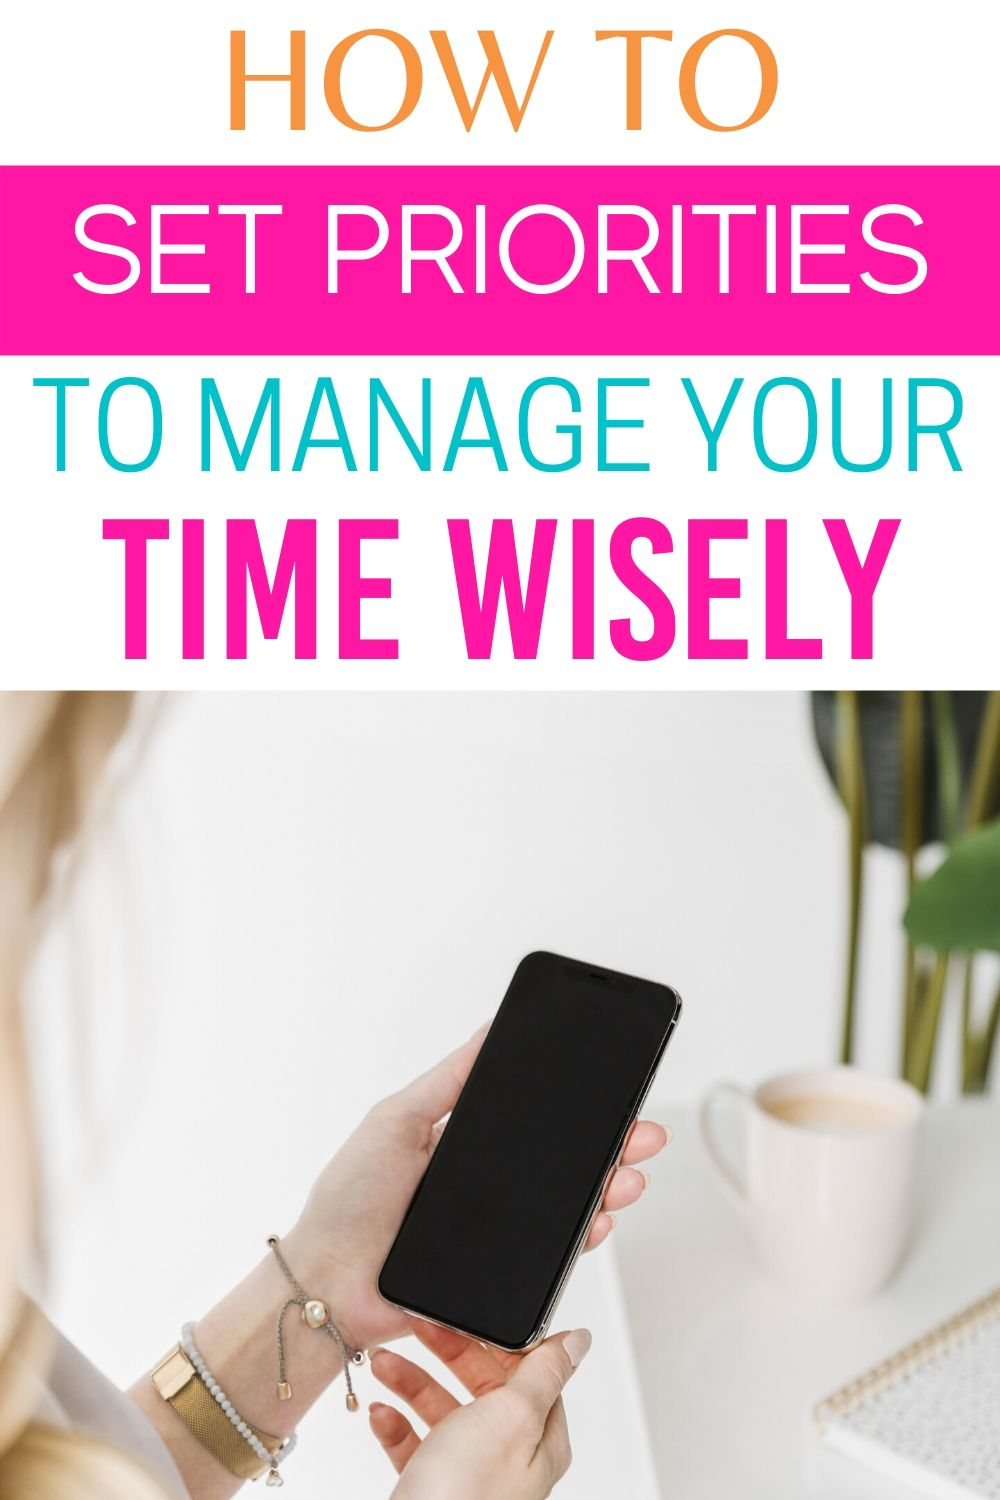 Setting priorities can seem overwhelming and impossible, but I can help. I will share how to set priorities which will allow you to manage your time wisely. #setuppriorities #takingaholdoflife #howtosetuppriorities via @homebyjenn